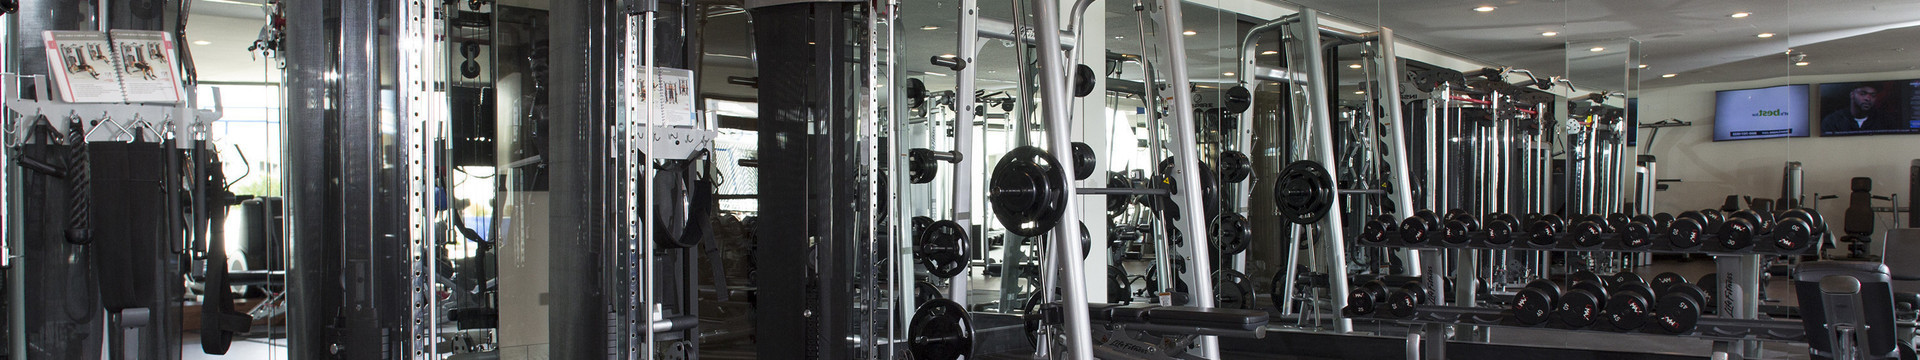 Does River Terrace Resort & Convention Center Have a Gym or Fitness Center